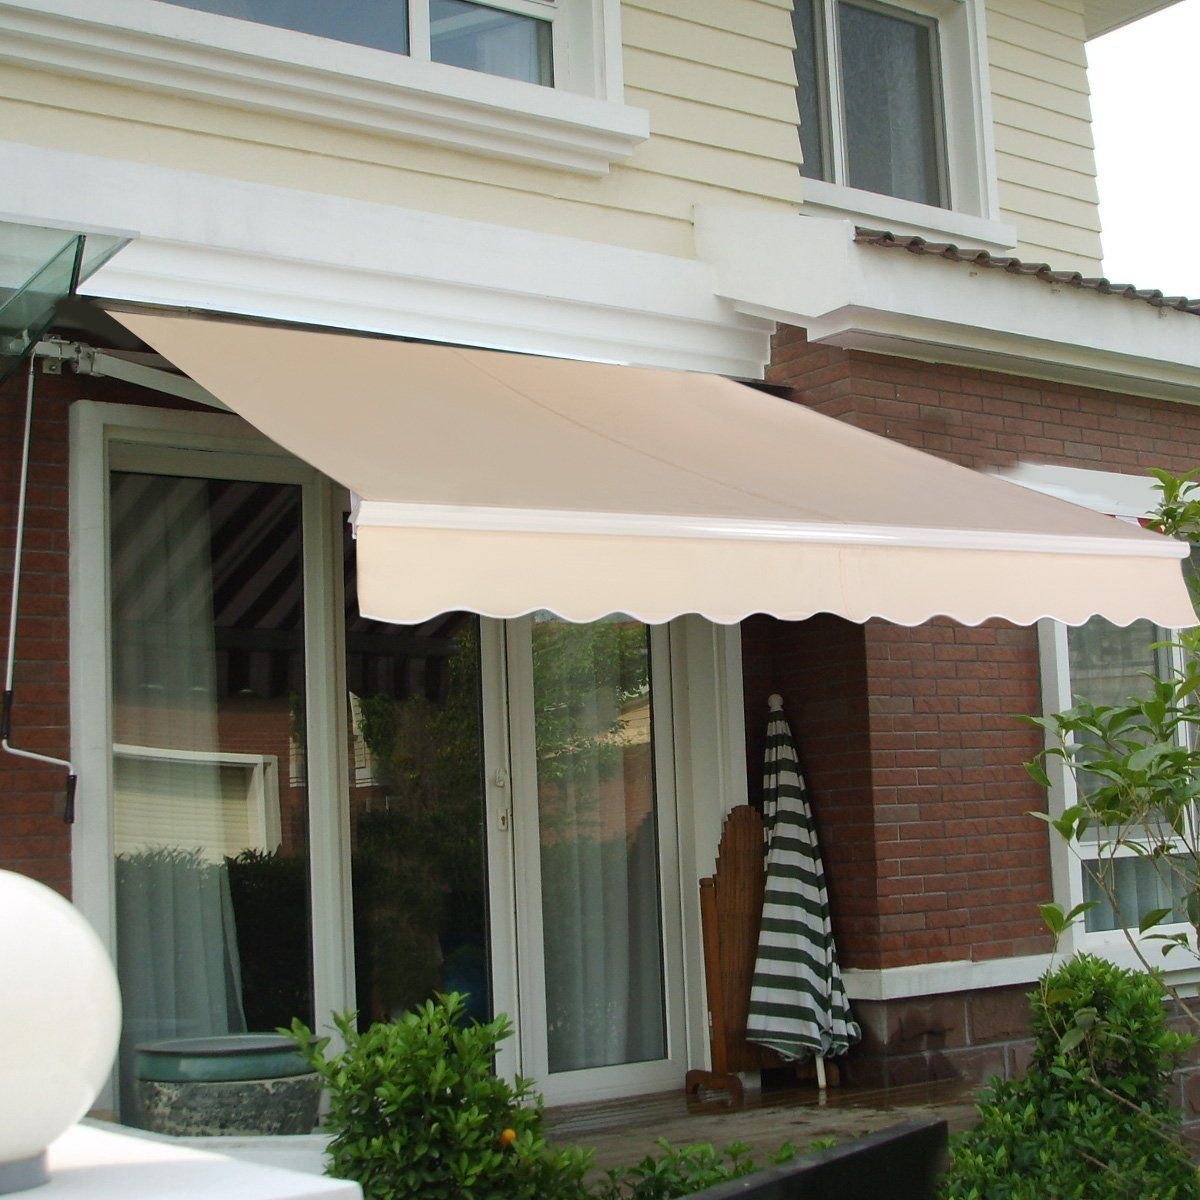 Amazon GoplusR Manual Patio 82x65 Retractable Deck Awning